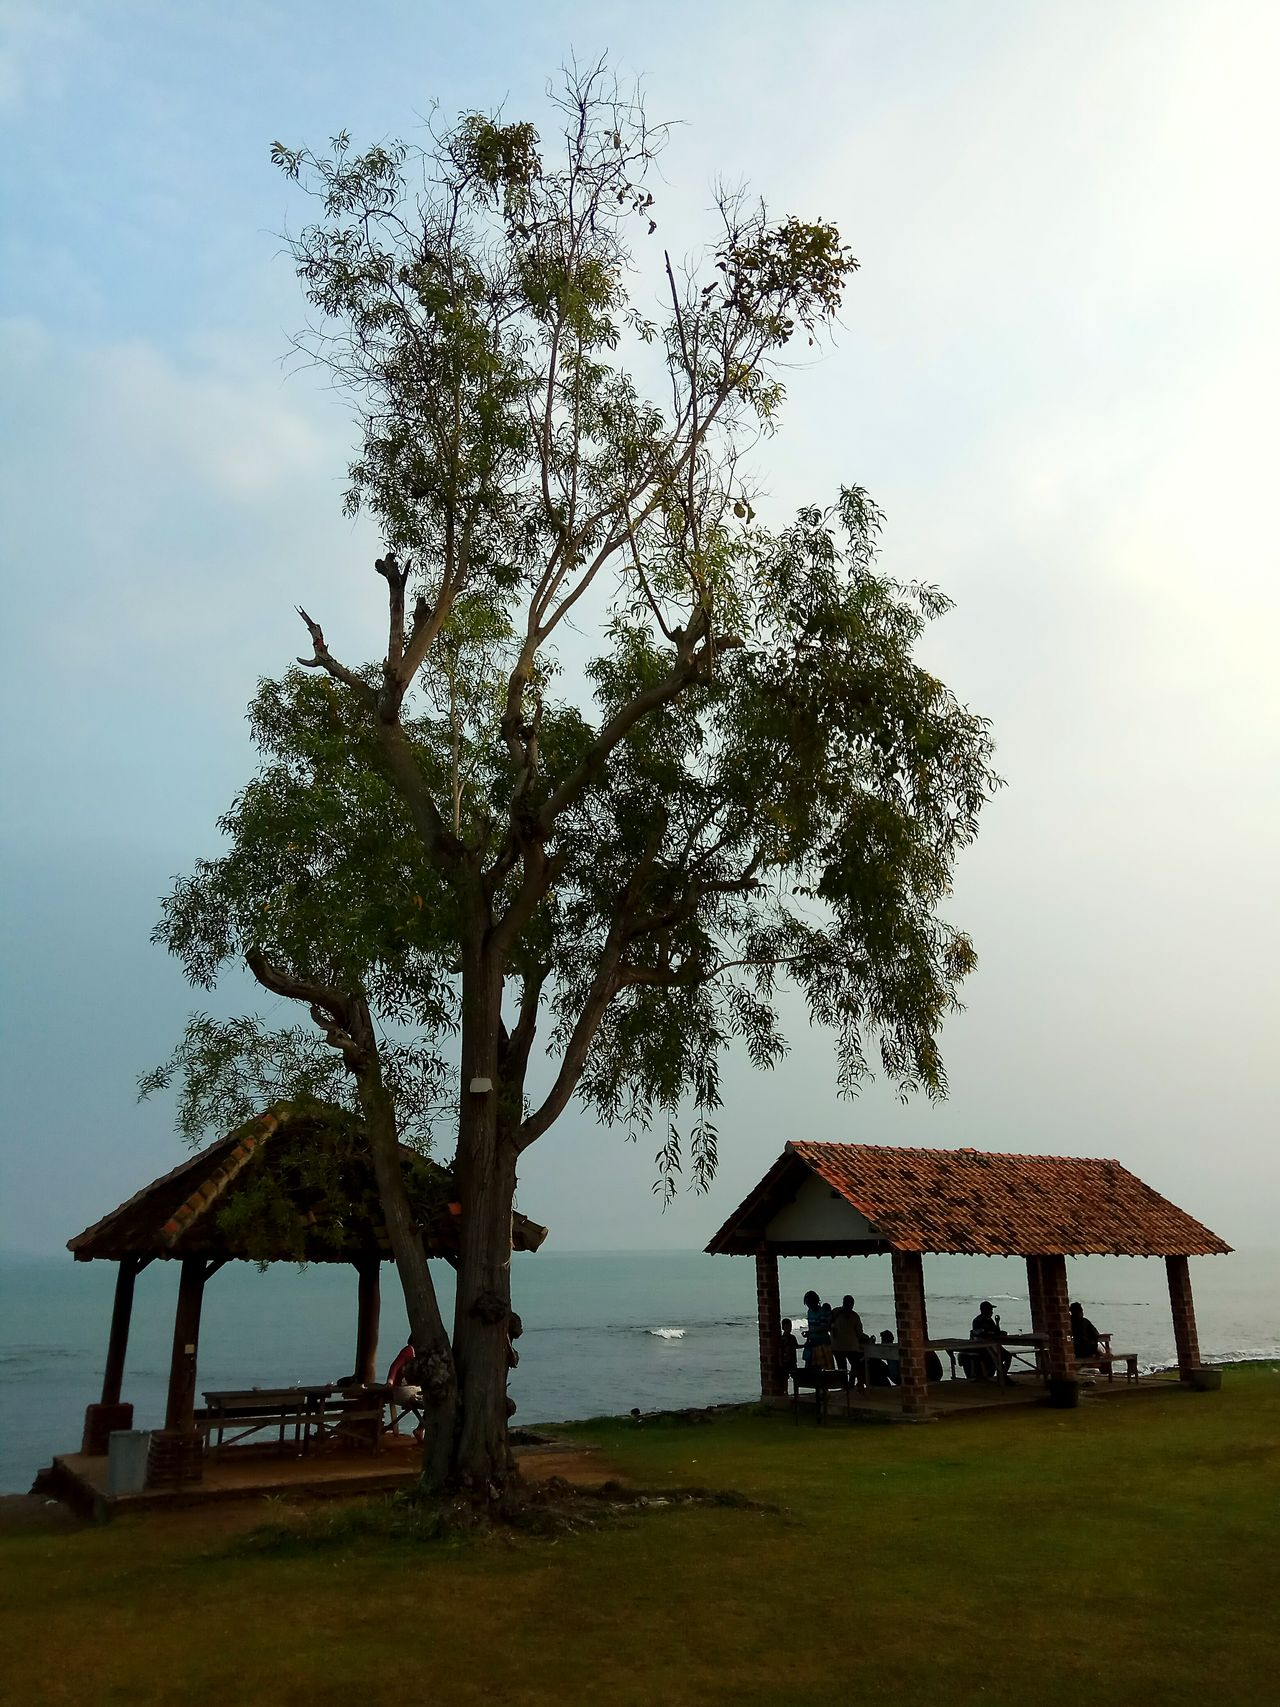 Under the tree Tree Built Structure Outdoors Travel Destinations Landscape Vacations Grass Nature Day Sky Water No People Building Exterior Beauty In Nature Tree Area People Relaxation Pleasure Vacation INDONESIA Travel Sea Water Travel Destination